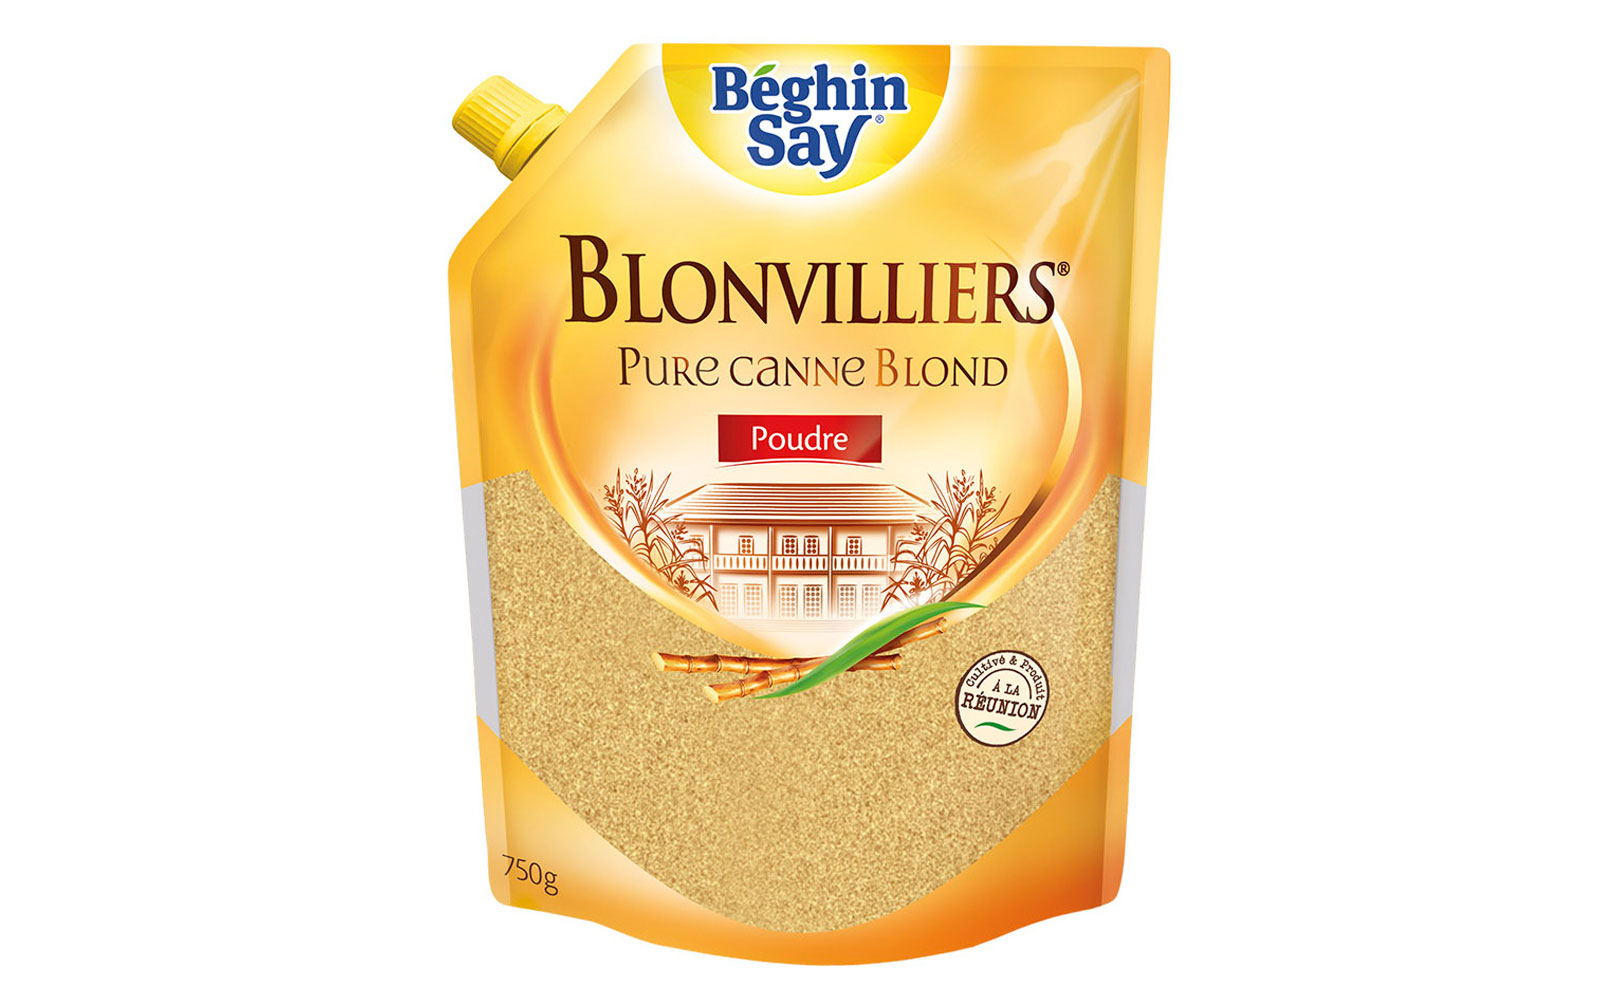 beghin say blonvilliers poudre sachet doypack 750g